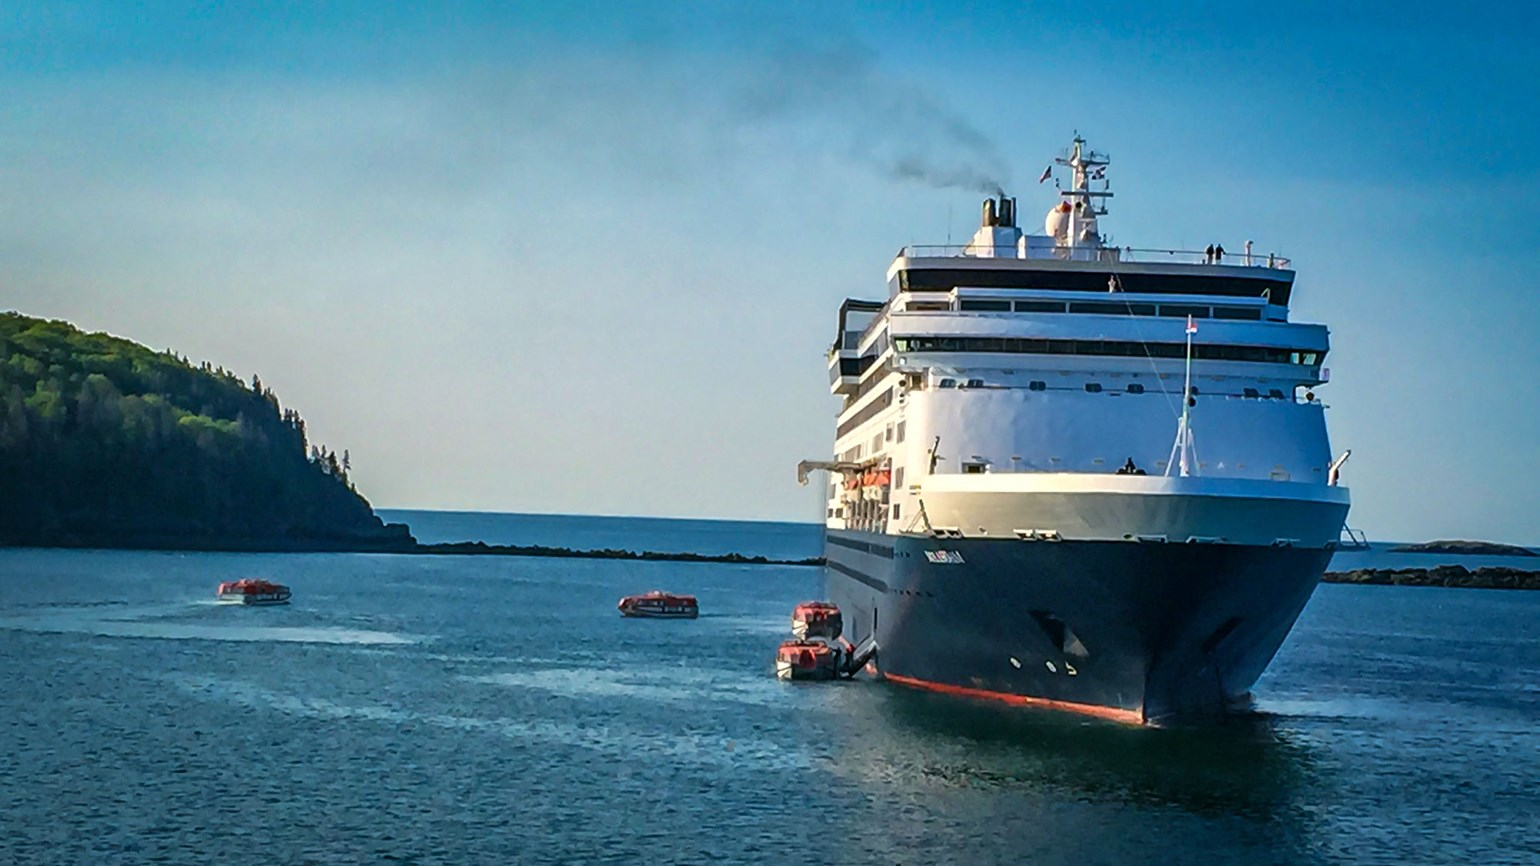 Two small towns, two takes on attracting cruise ships